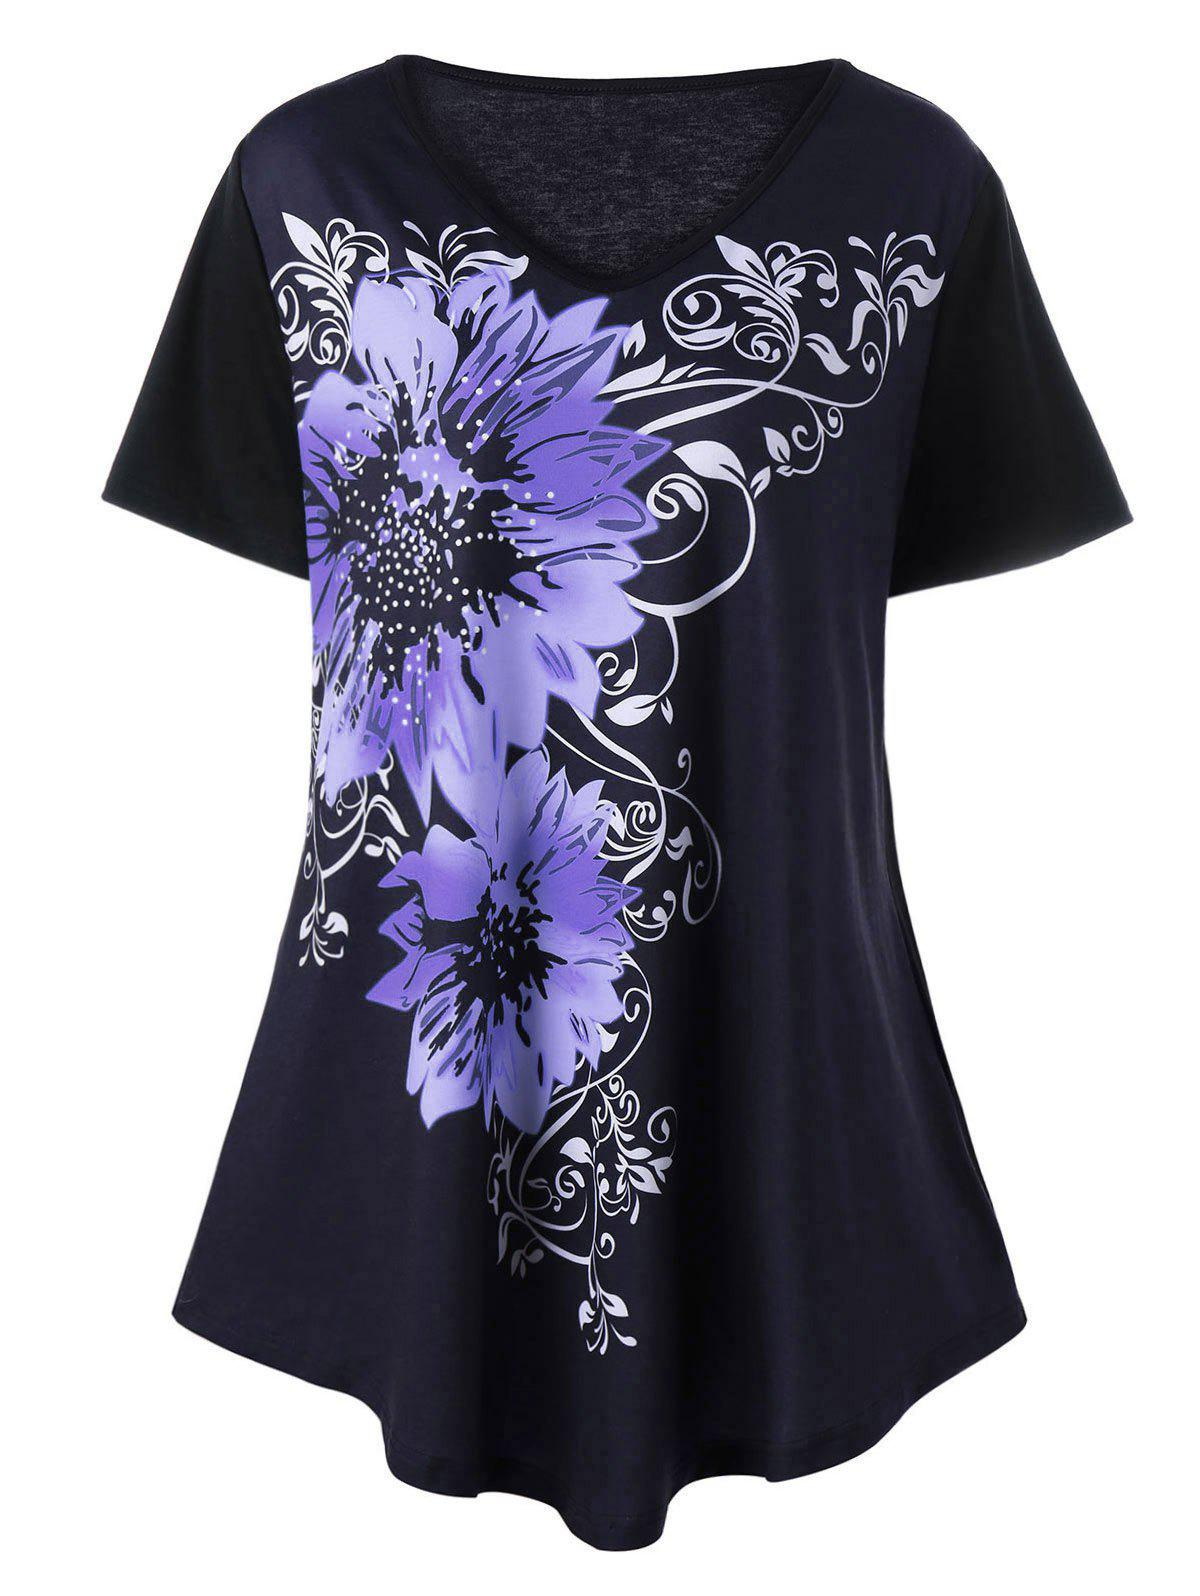 Plus Size V Neck Floral Graphic T-ShirtWOMEN<br><br>Size: 3XL; Color: PURPLE; Material: Cotton,Cotton Blends; Shirt Length: Regular; Sleeve Length: Short; Collar: V-Neck; Style: Fashion; Season: Spring,Summer; Pattern Type: Floral; Weight: 0.2800kg; Package Contents: 1 x Tee;